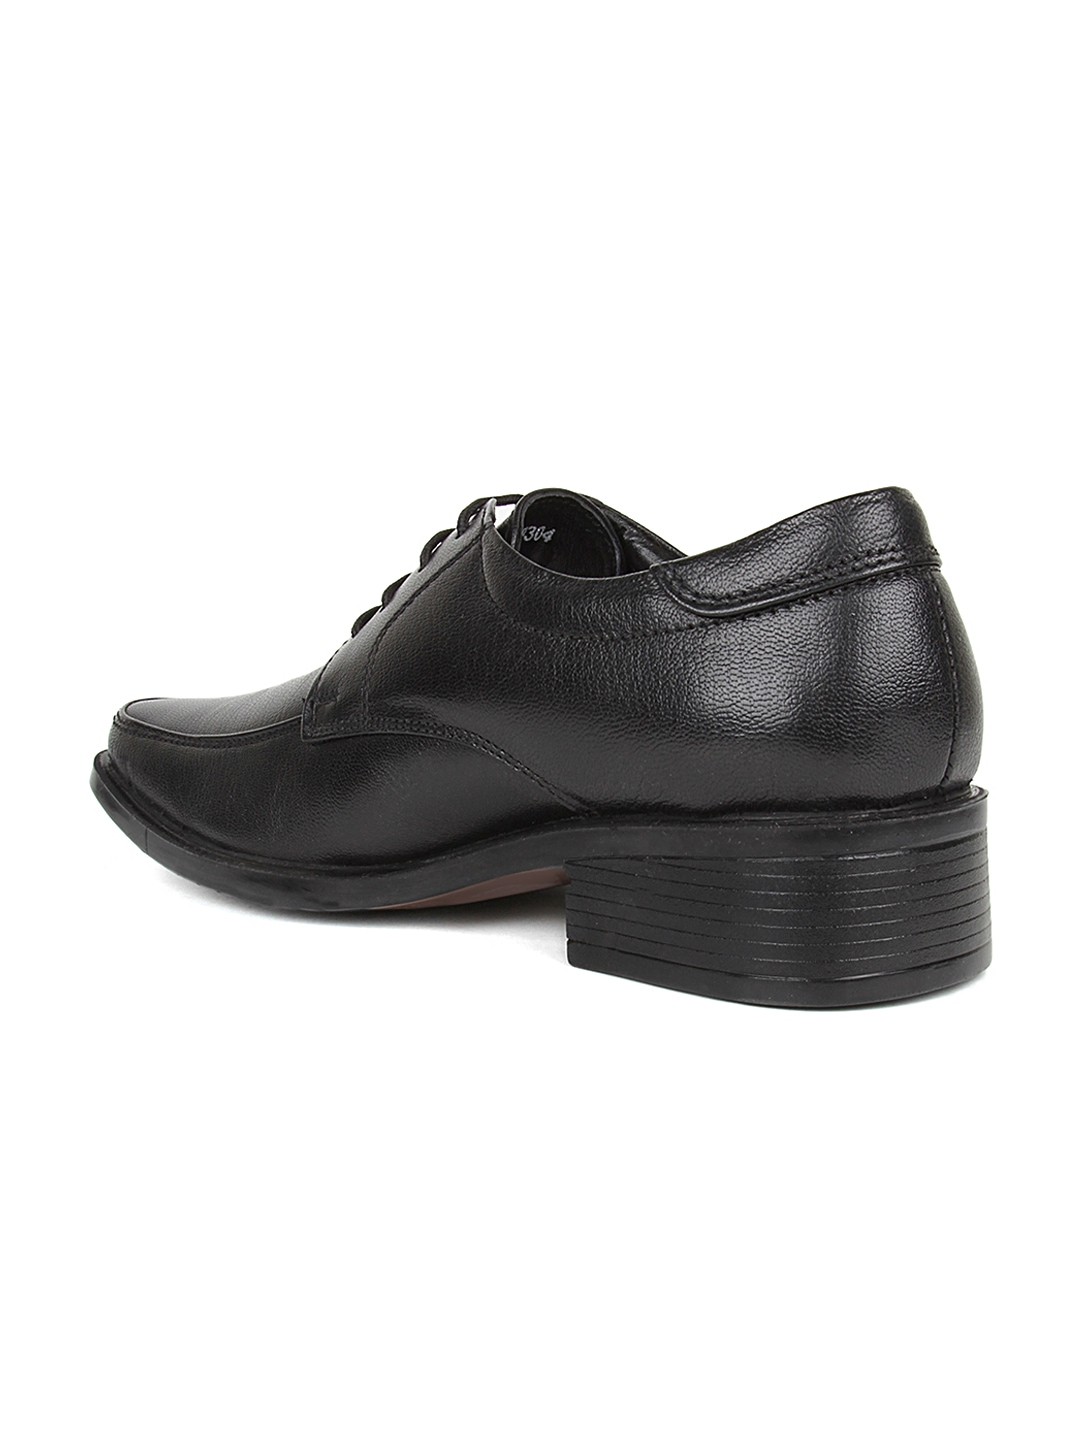 myntra hubland black leather formal shoes 686837 buy